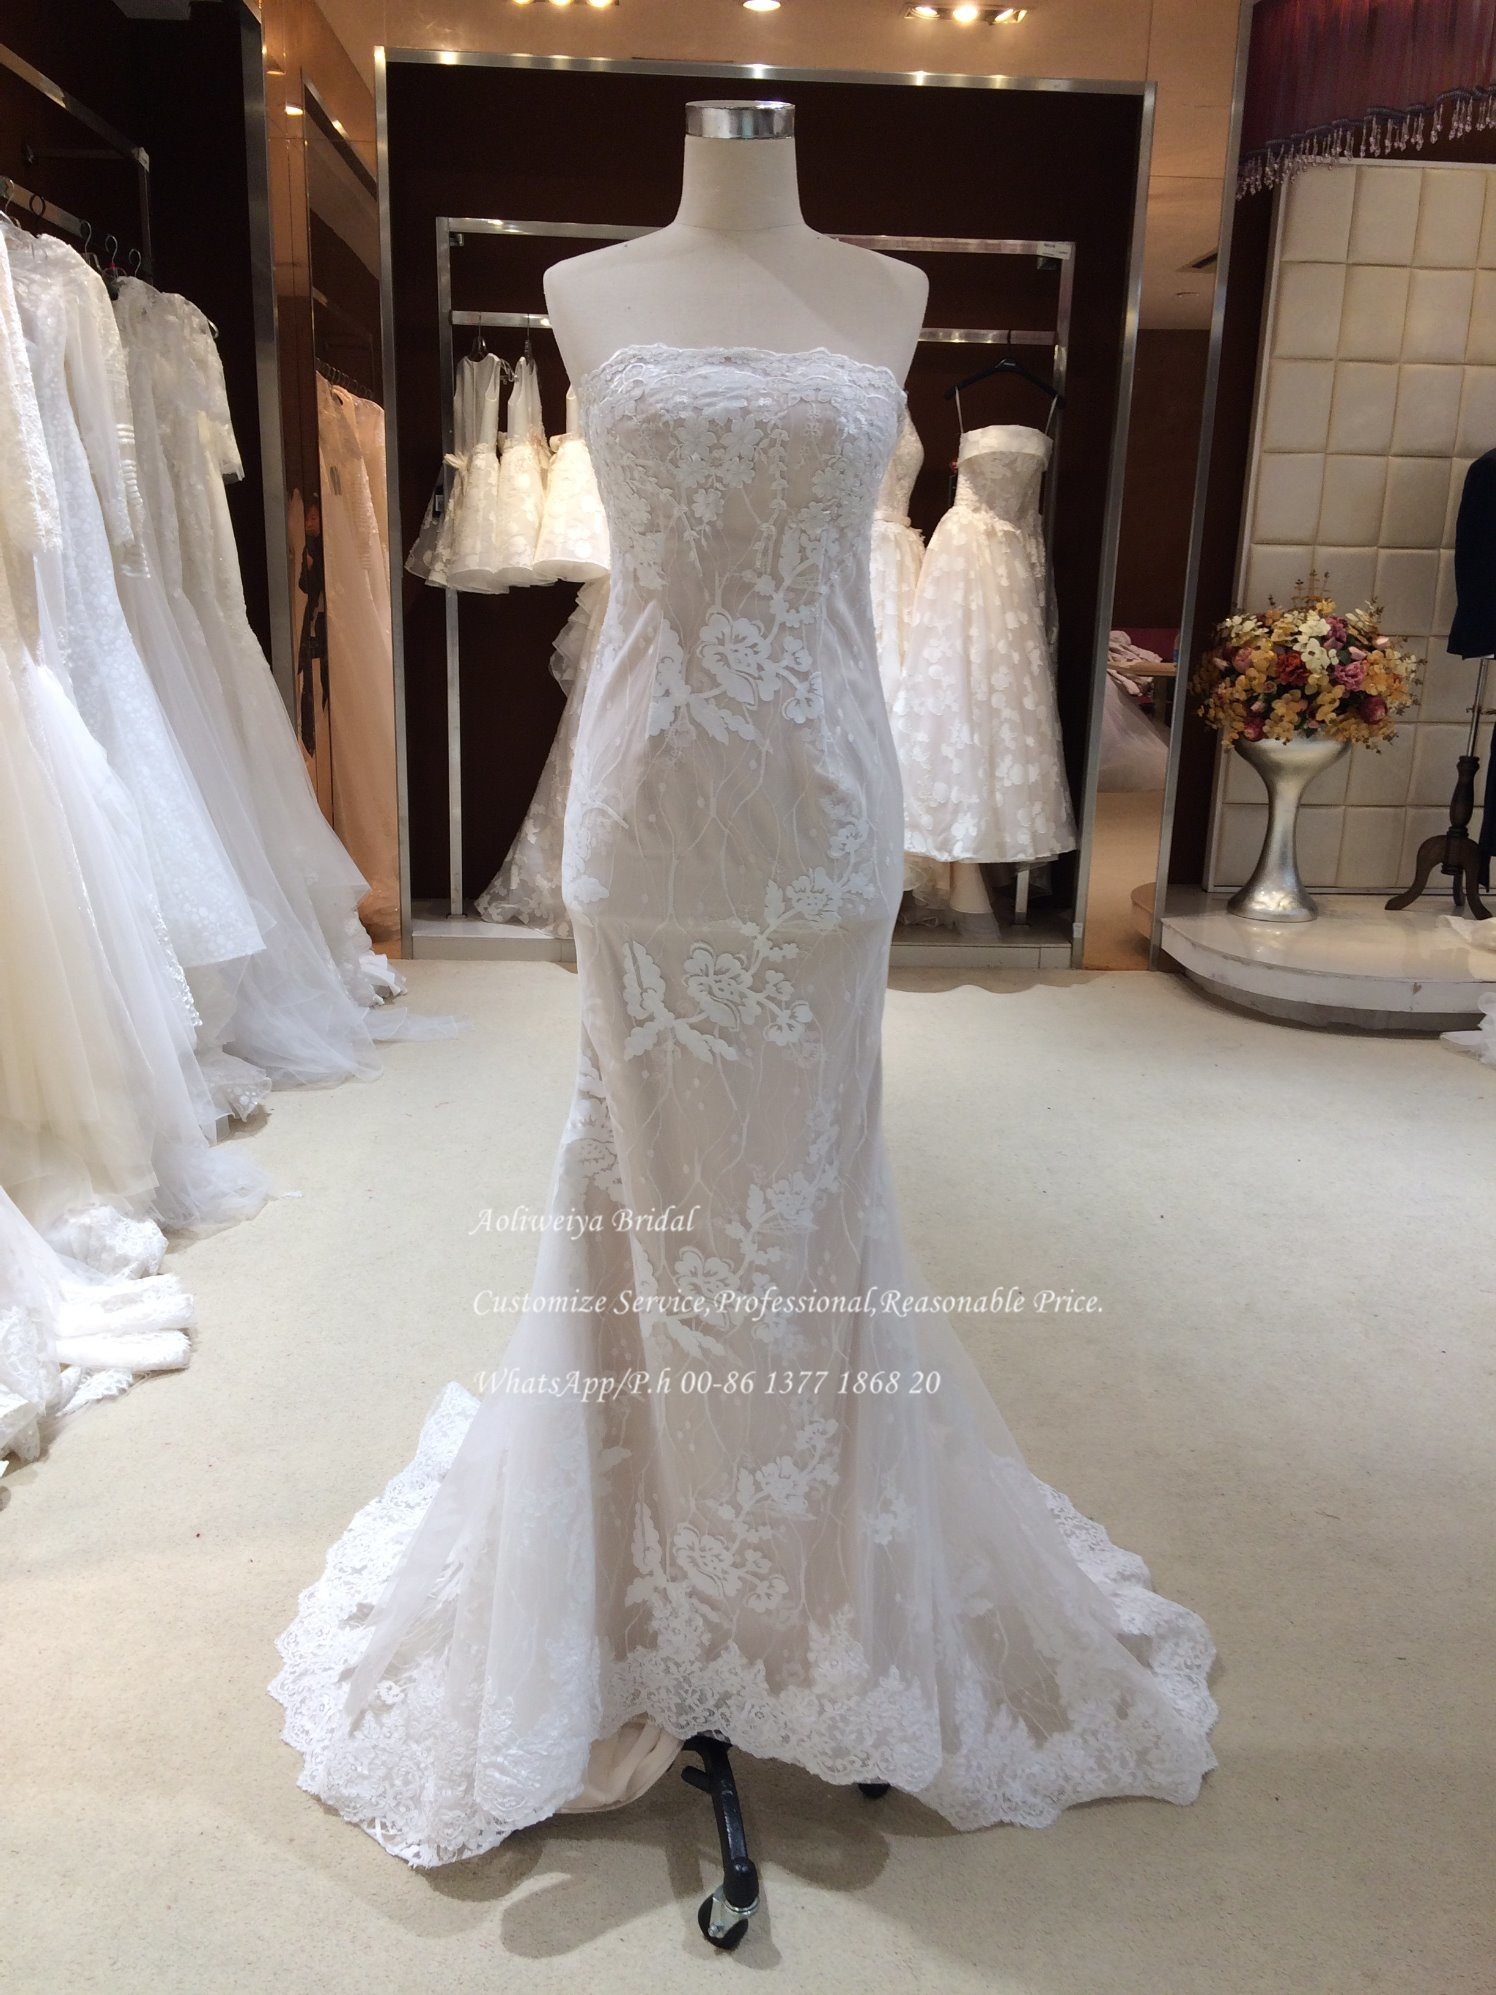 To acquire Wedding customize dress picture trends